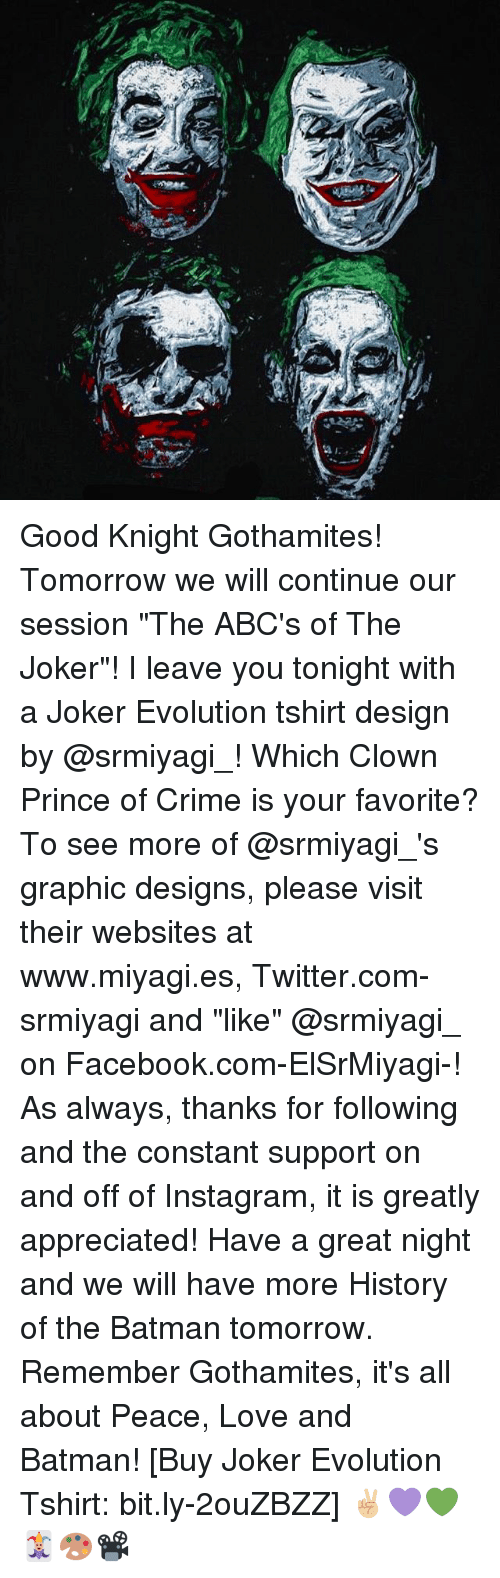 """Batman, Crime, and Facebook: P-,-fri  9  :7 Good Knight Gothamites! Tomorrow we will continue our session """"The ABC's of The Joker""""! I leave you tonight with a Joker Evolution tshirt design by @srmiyagi_! Which Clown Prince of Crime is your favorite? To see more of @srmiyagi_'s graphic designs, please visit their websites at www.miyagi.es, Twitter.com-srmiyagi and """"like"""" @srmiyagi_ on Facebook.com-ElSrMiyagi-! As always, thanks for following and the constant support on and off of Instagram, it is greatly appreciated! Have a great night and we will have more History of the Batman tomorrow. Remember Gothamites, it's all about Peace, Love and Batman! [Buy Joker Evolution Tshirt: bit.ly-2ouZBZZ] ✌🏼💜💚🃏🎨📽"""